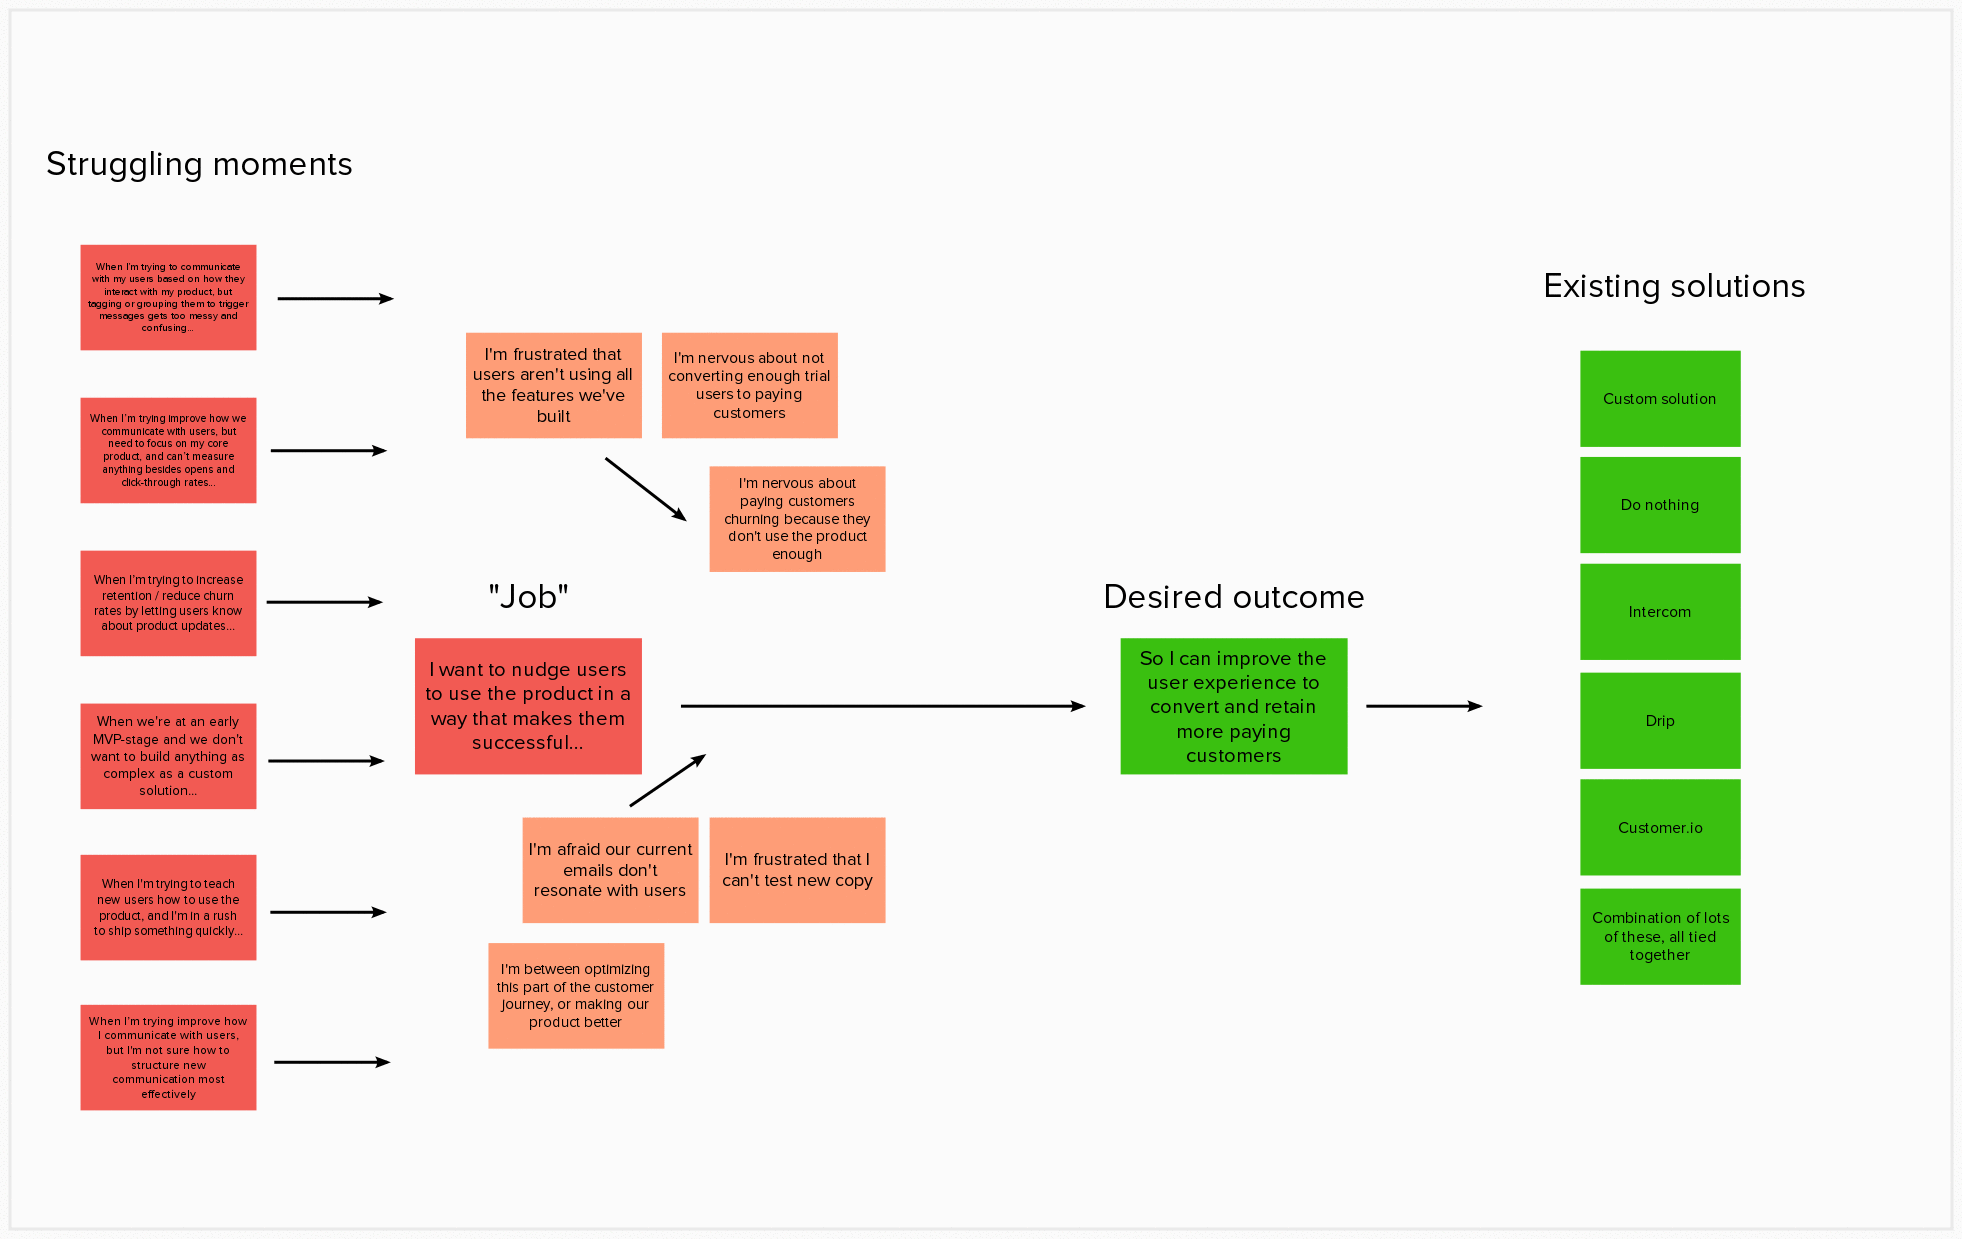 "Red: situations that cause founders pain (""struggling moments""). Orange: motivating factors pushing founders to seek a new solution. Green: desired outcome, and existing solutions for achieving that outcome."